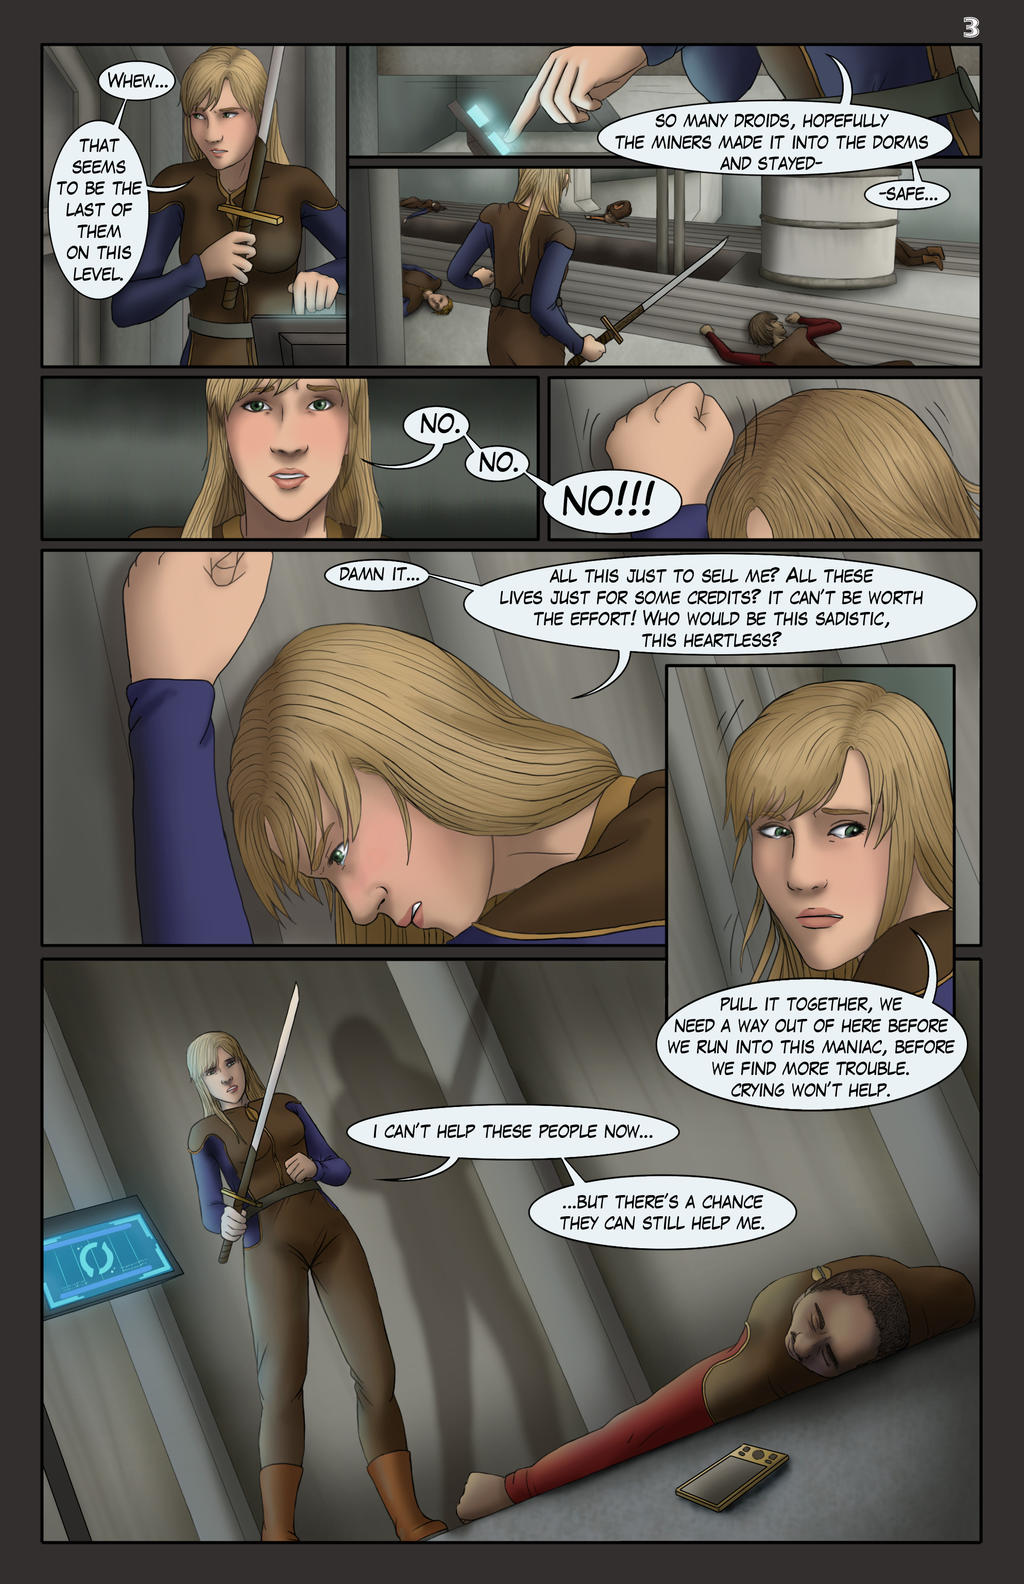 Unfinished Tales of the Exile, Issue 3, Page 3